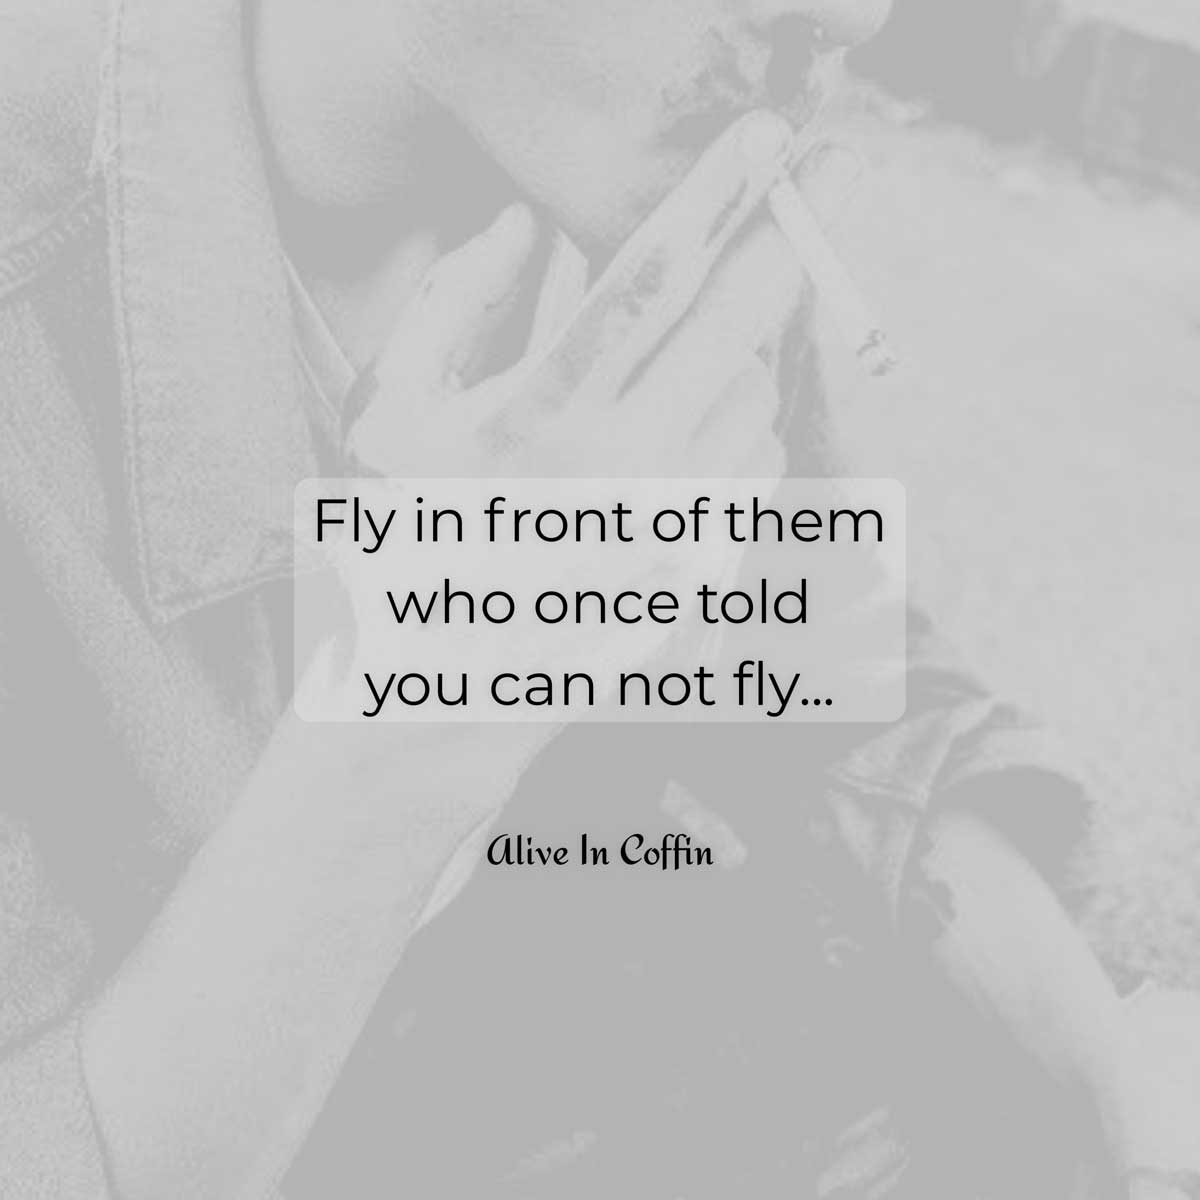 A poem about where and when to fly.